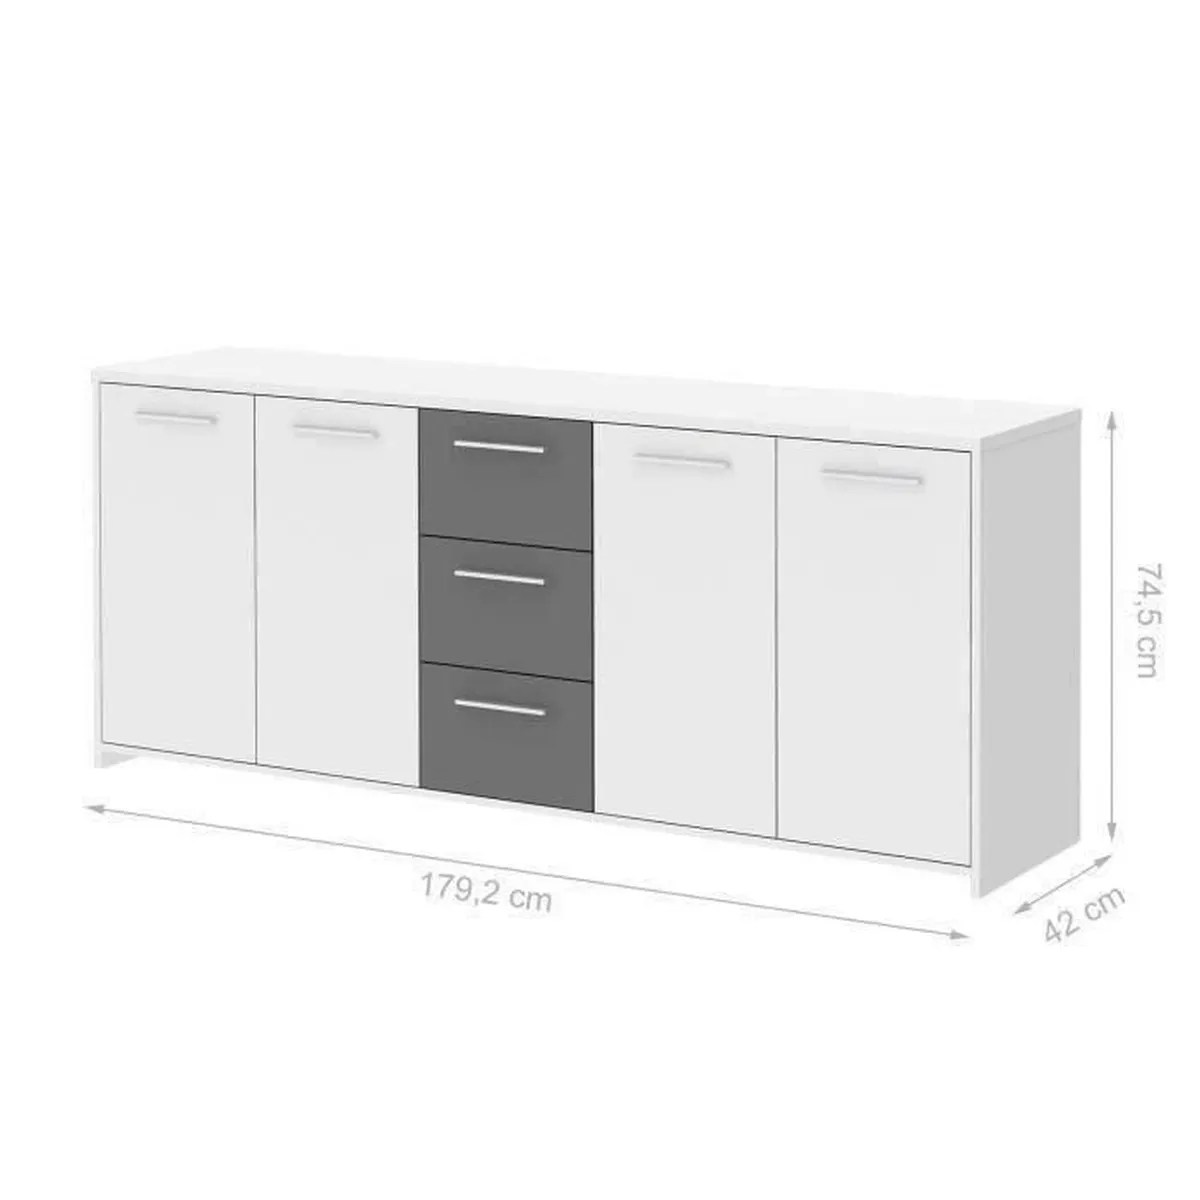 Buffet Salon Pas Cher Buffet Salon Pas Cher Maison Design Wiblia